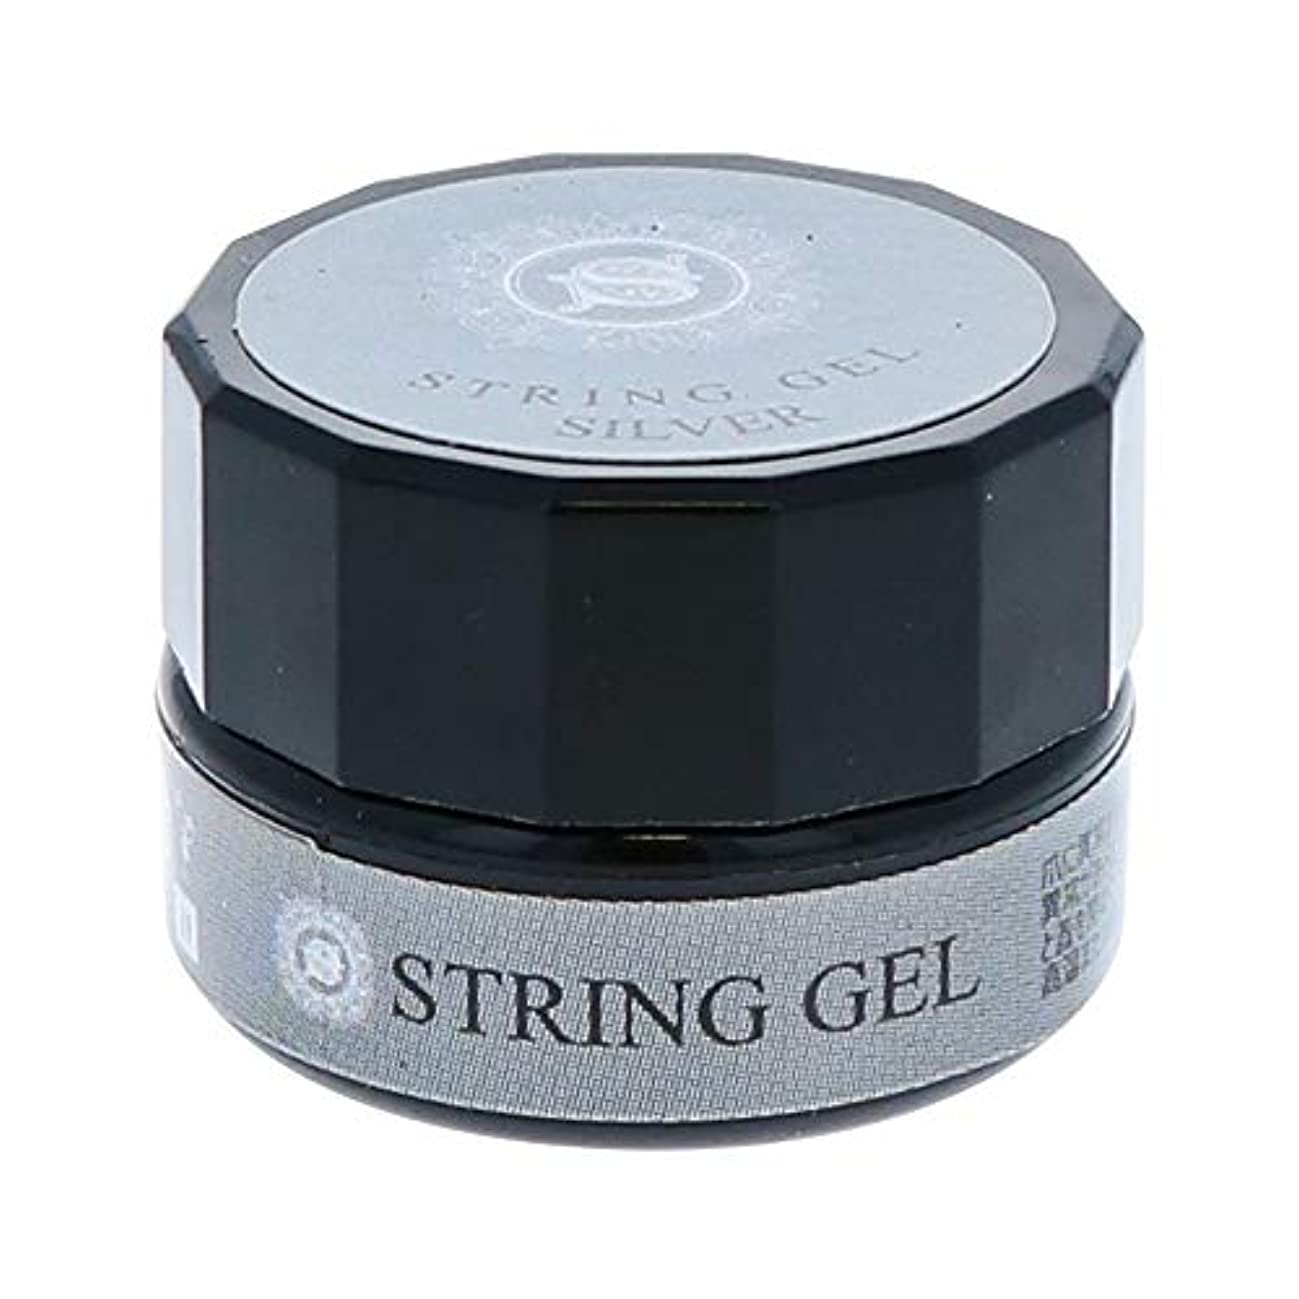 ビューティーネイラー simply string gel (silver) 2.5g QSG-2